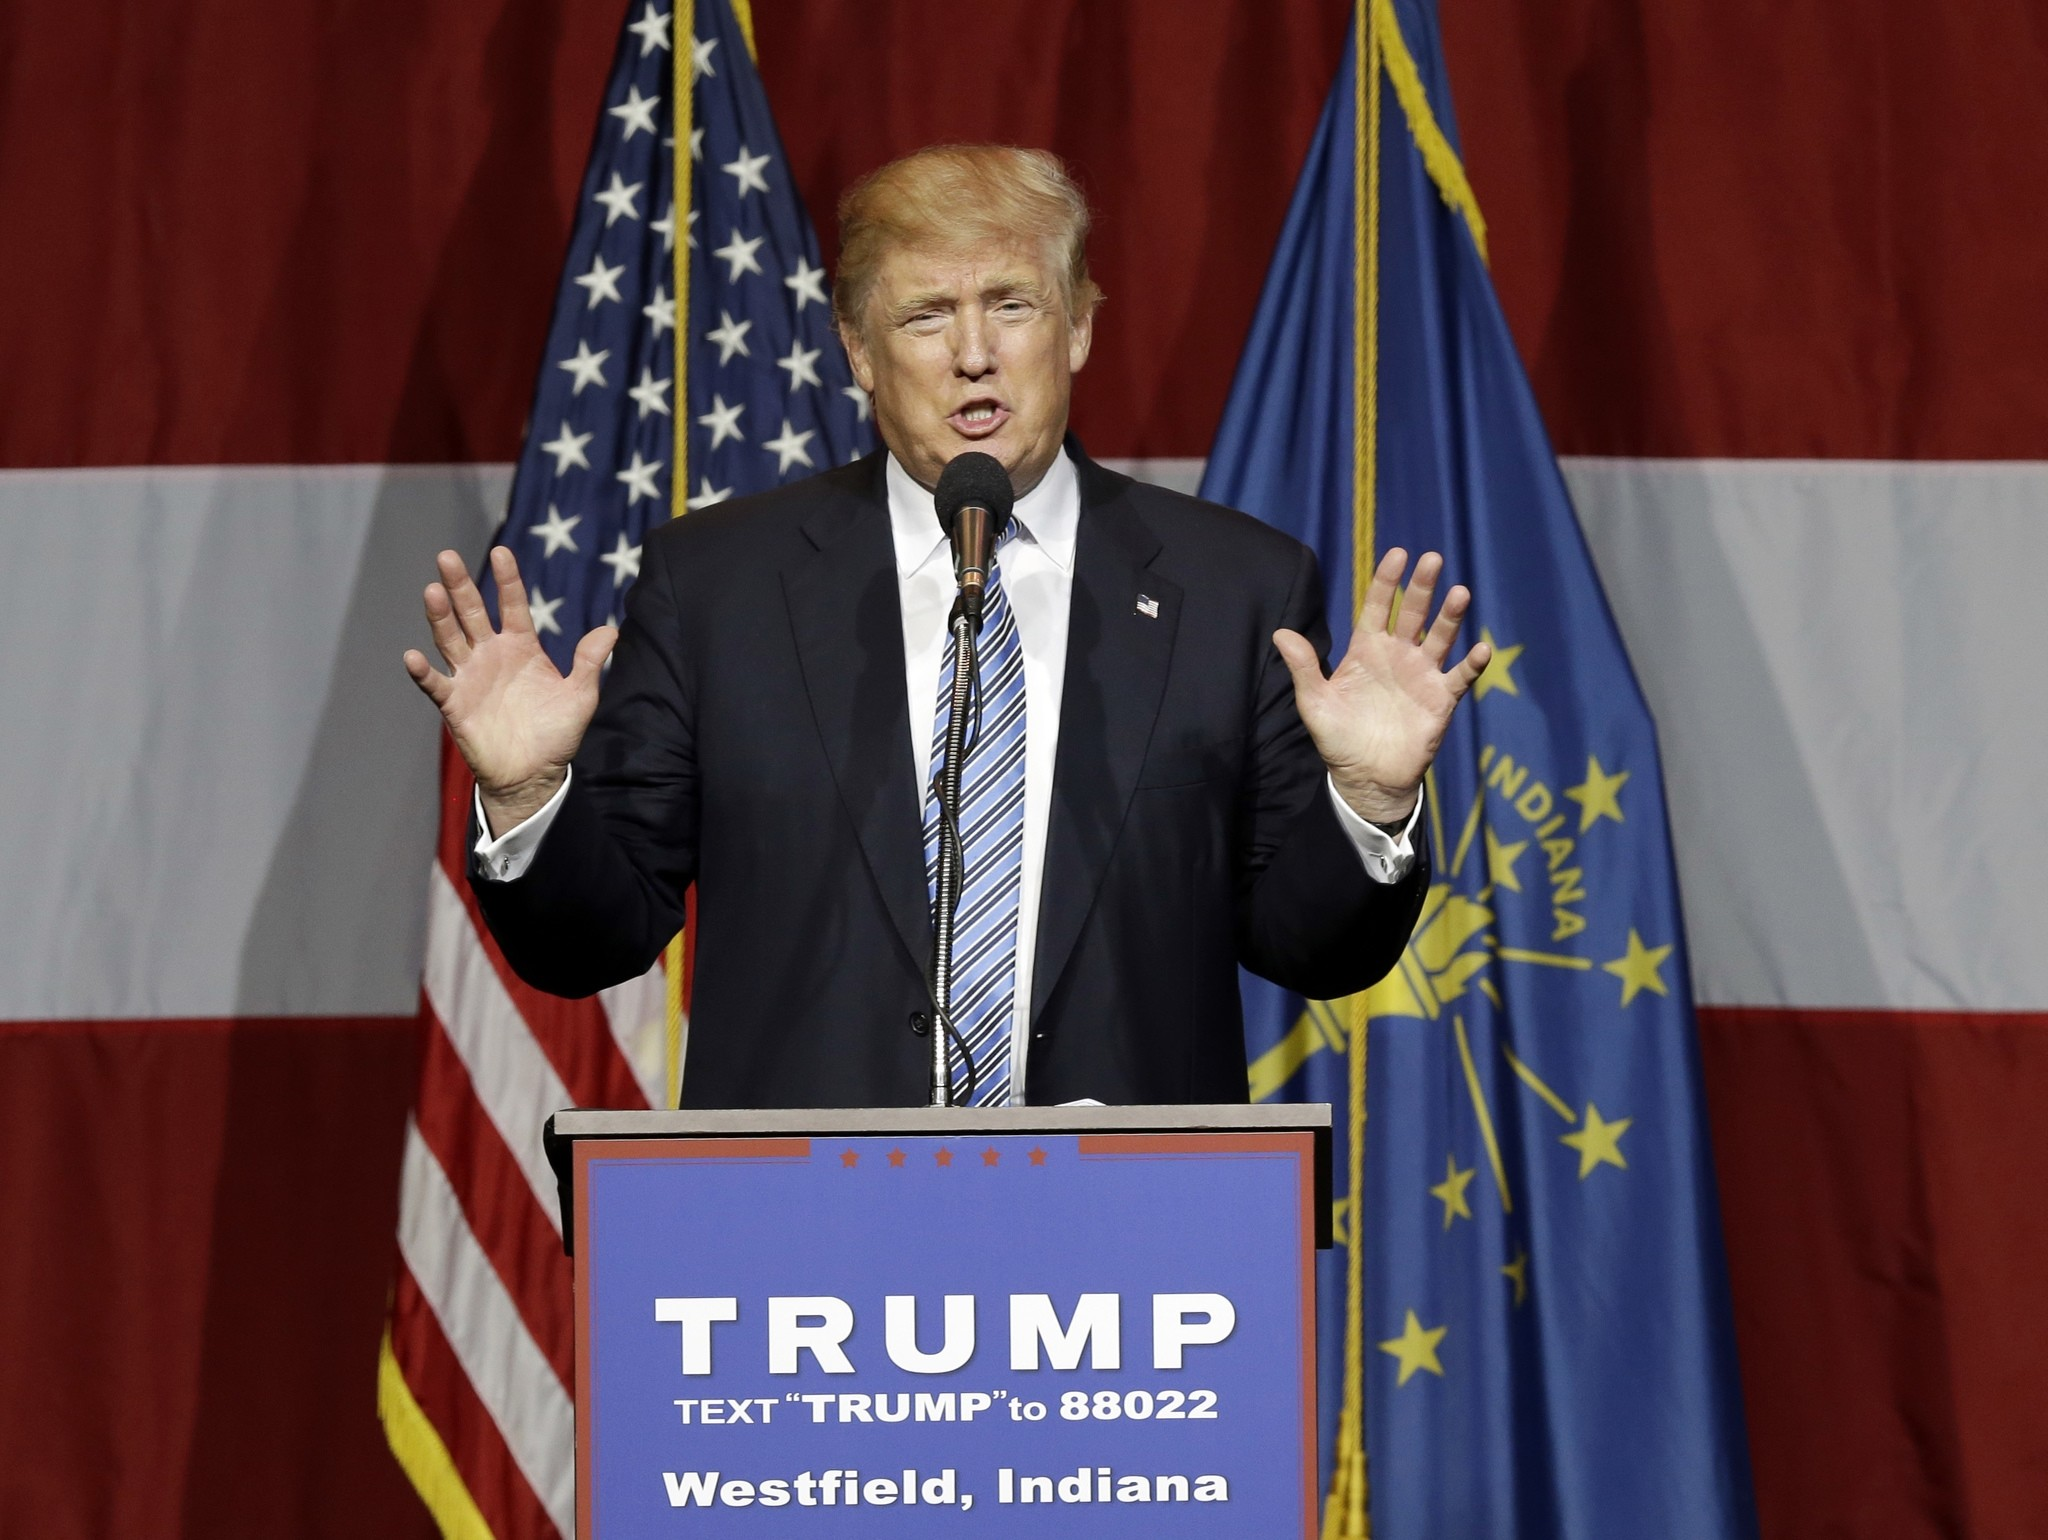 In this July 12, 2016 file photo, Republican presidential candidate Donald Trump speaks in Westfield, Ind. (AP Photo)